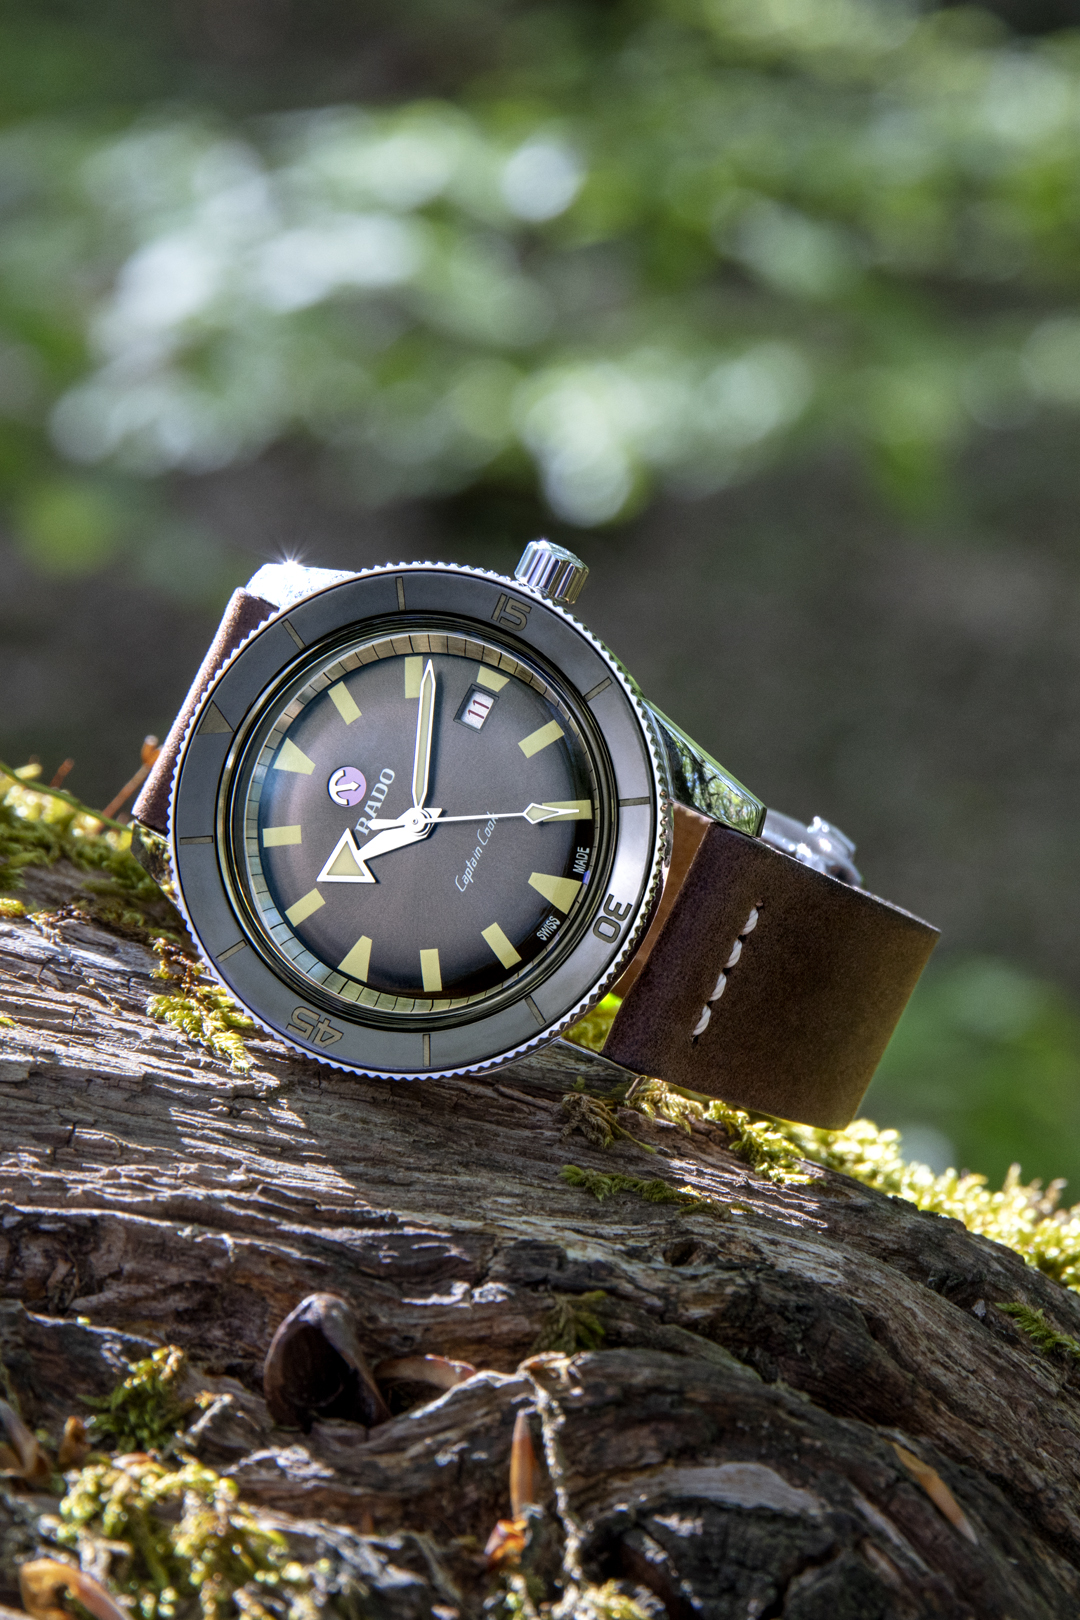 A closer look at the Rado Captain Cook Automatic